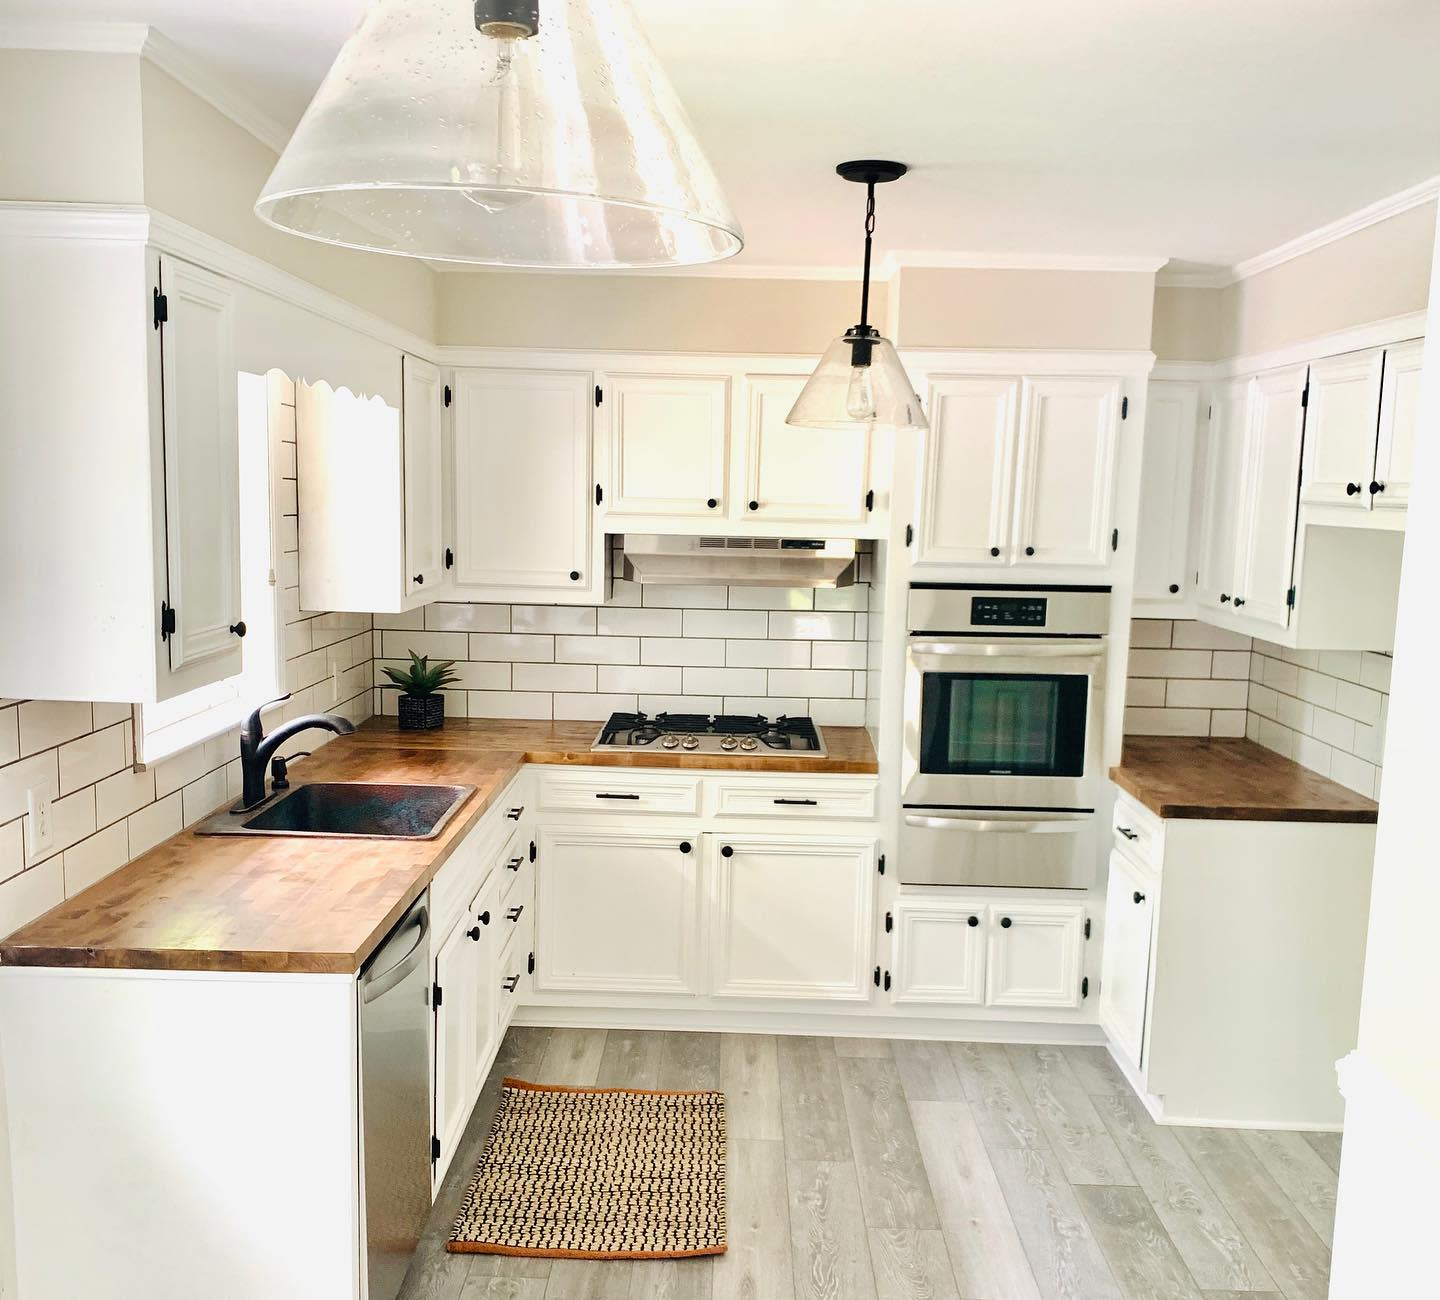 White Interior Wood Countertop Ideas -sunshineandturquoise